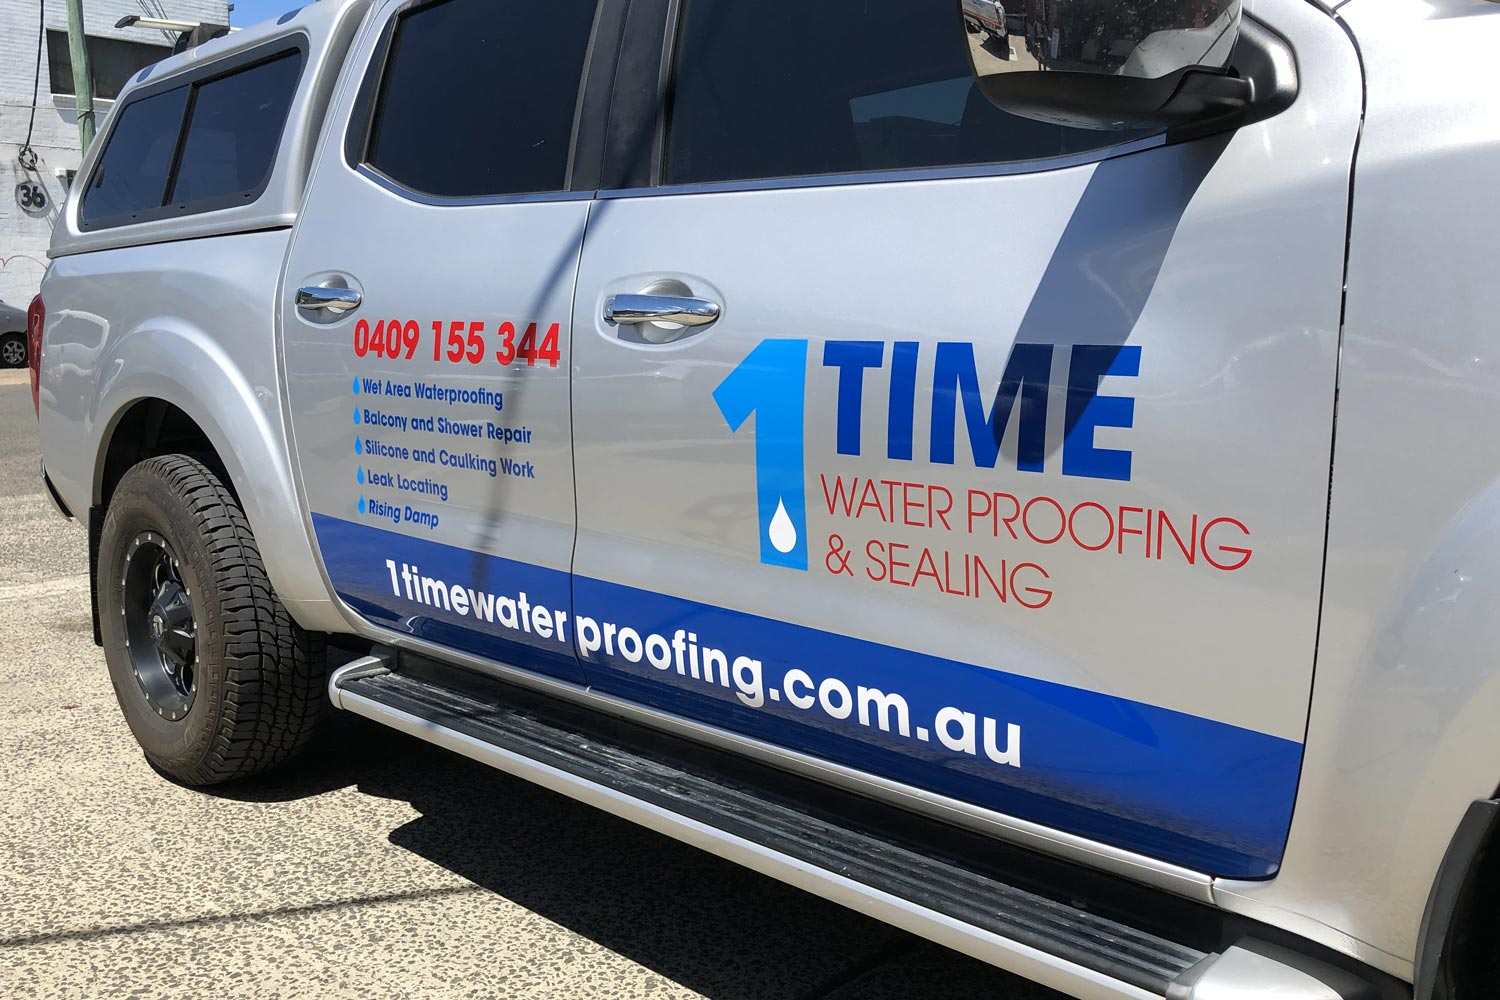 1Time Waterproofing Nissan right-side with signage